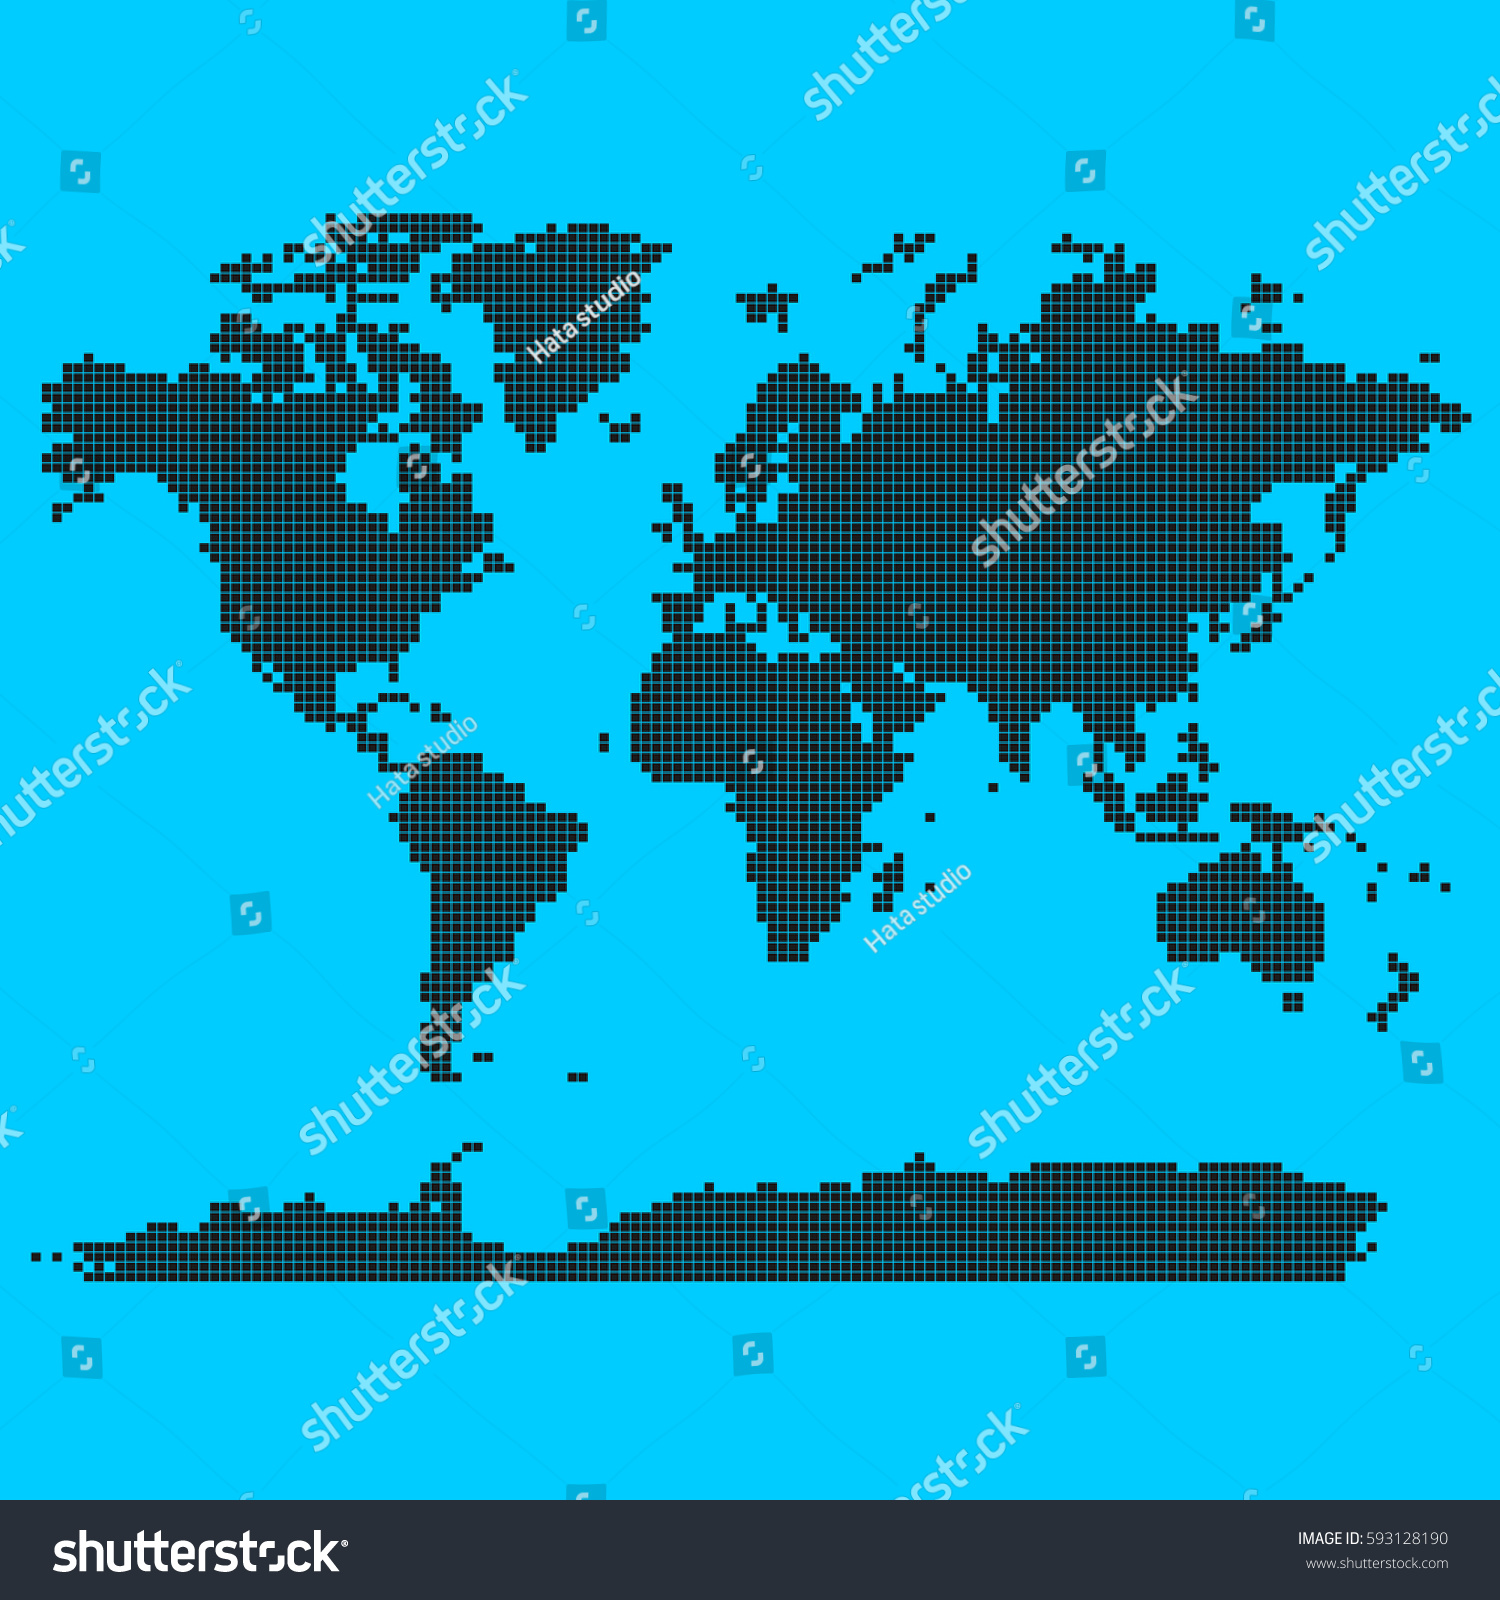 World map squares vector 5512 squares stock vector 593128190 world map in squares vector 5512 squares elements gumiabroncs Image collections